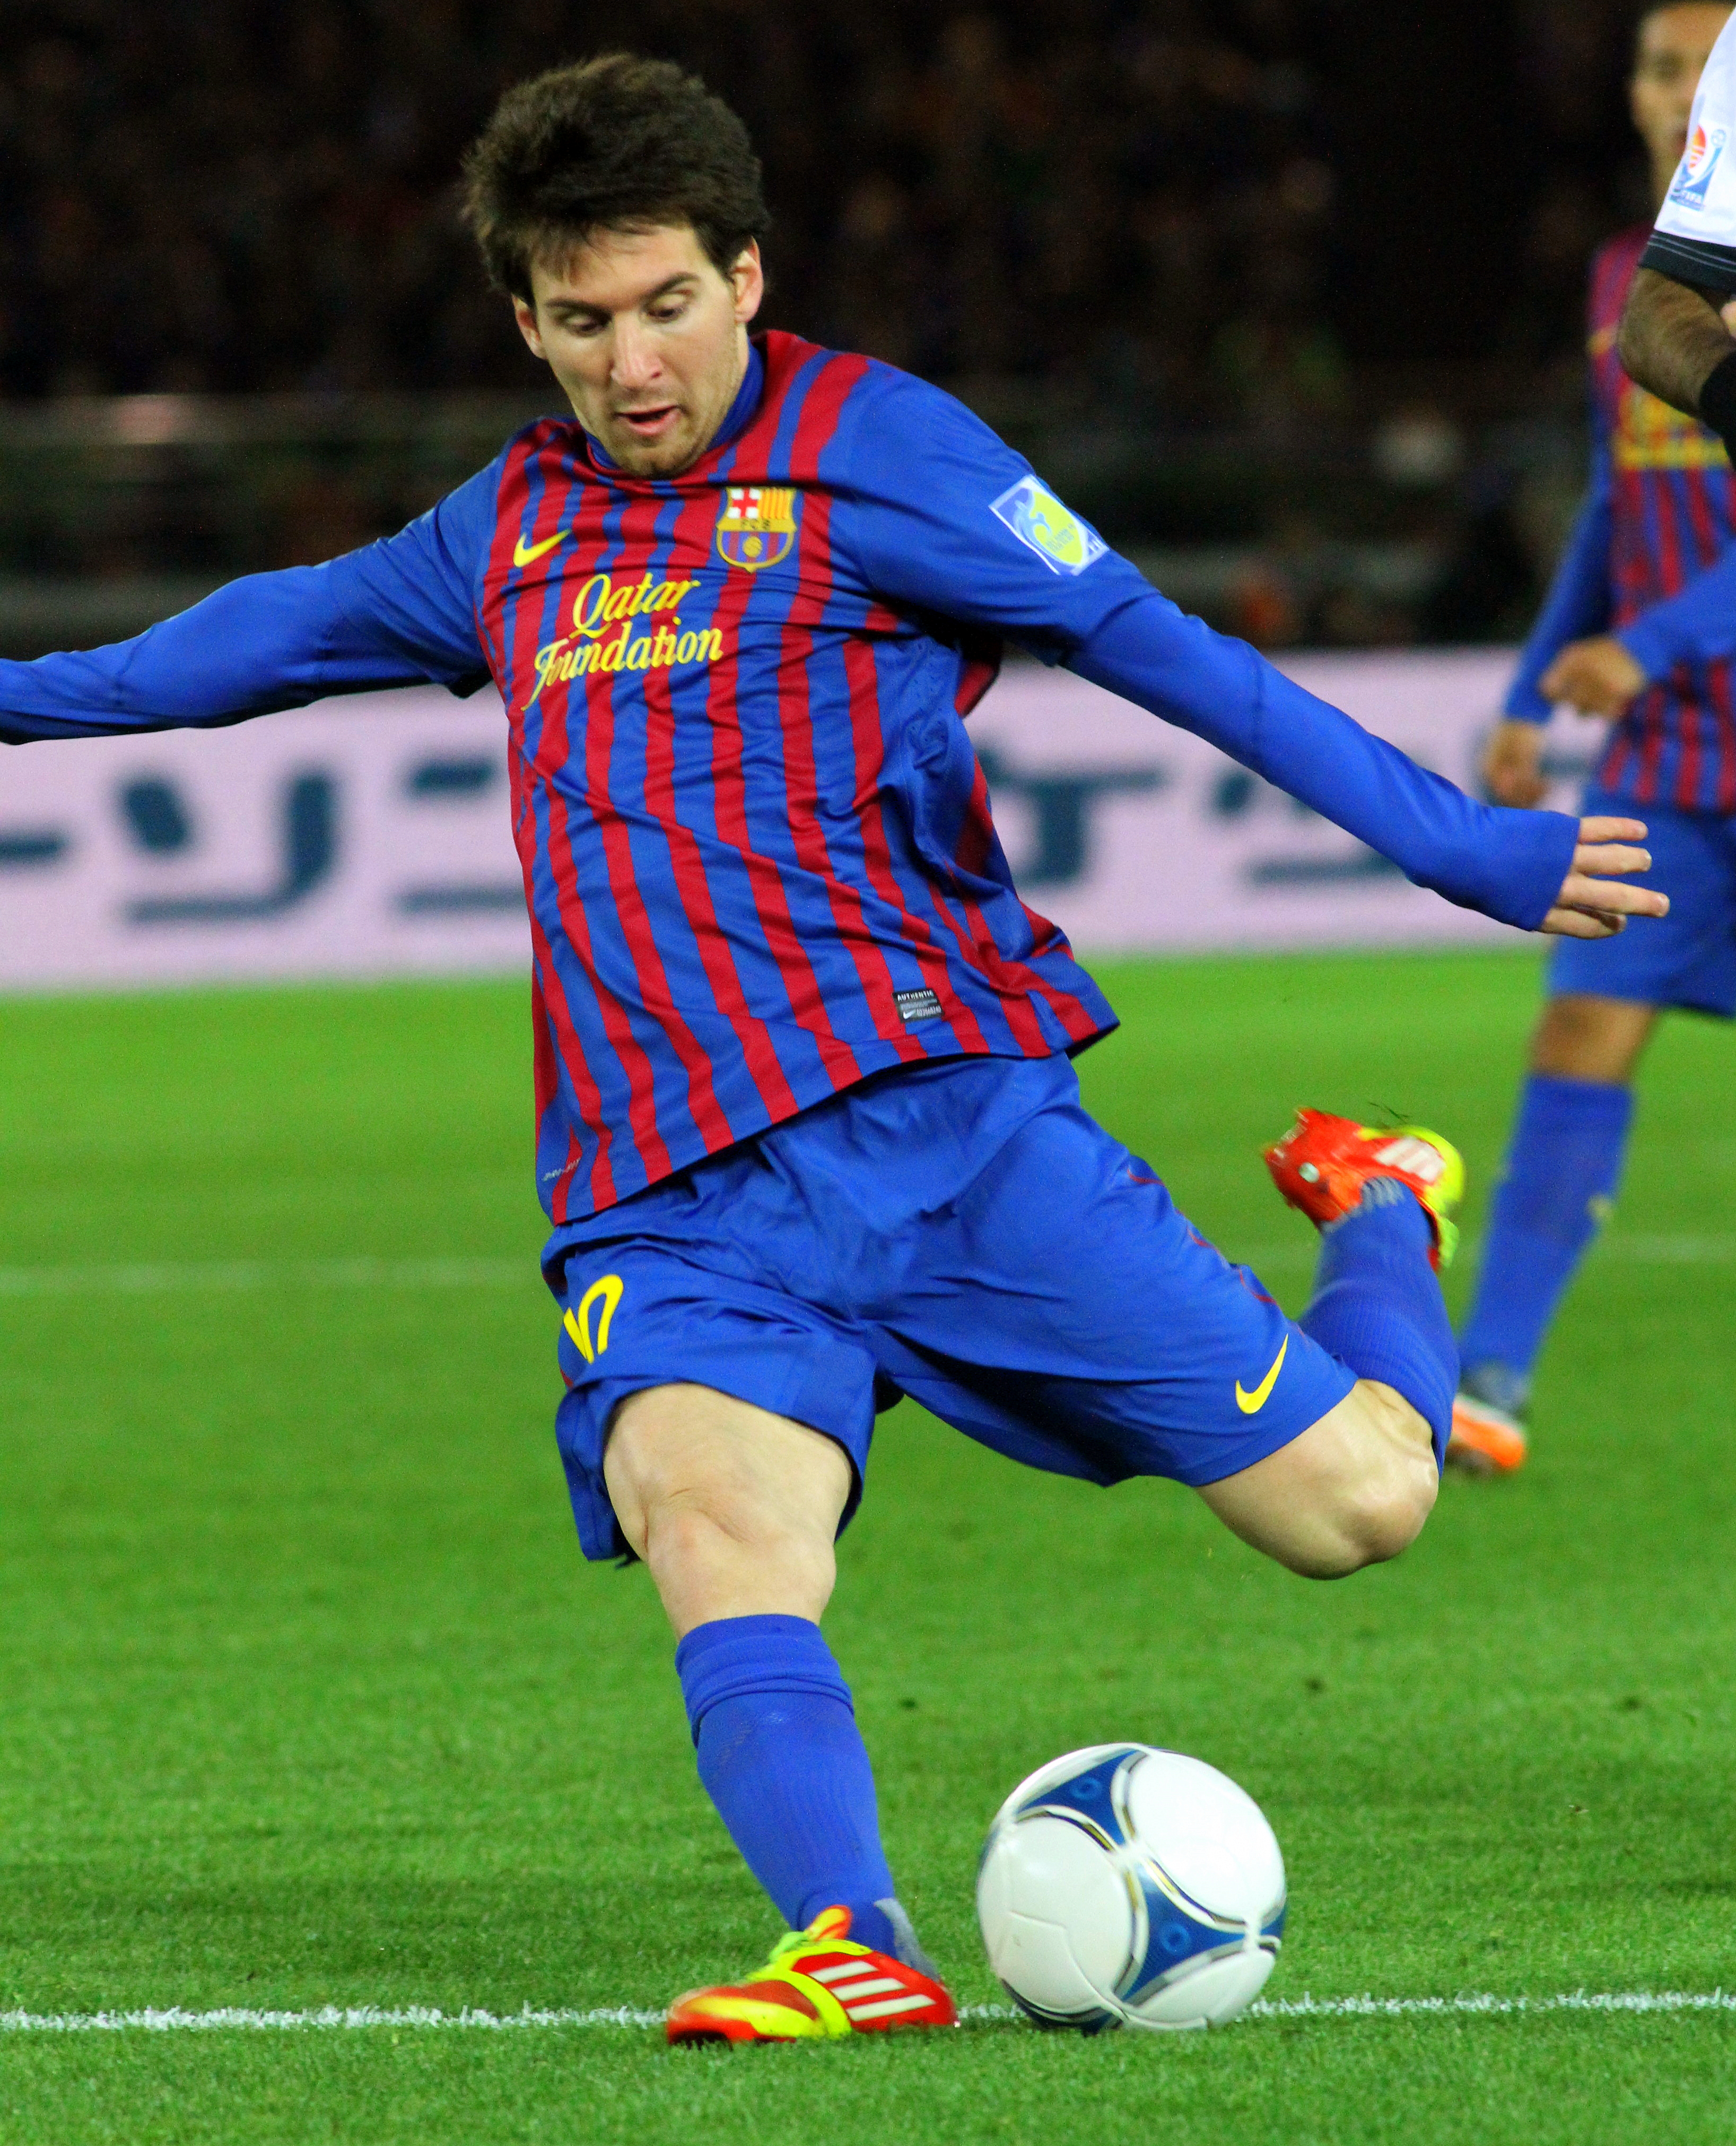 Description Lionel Messi Player Of The Year 2011